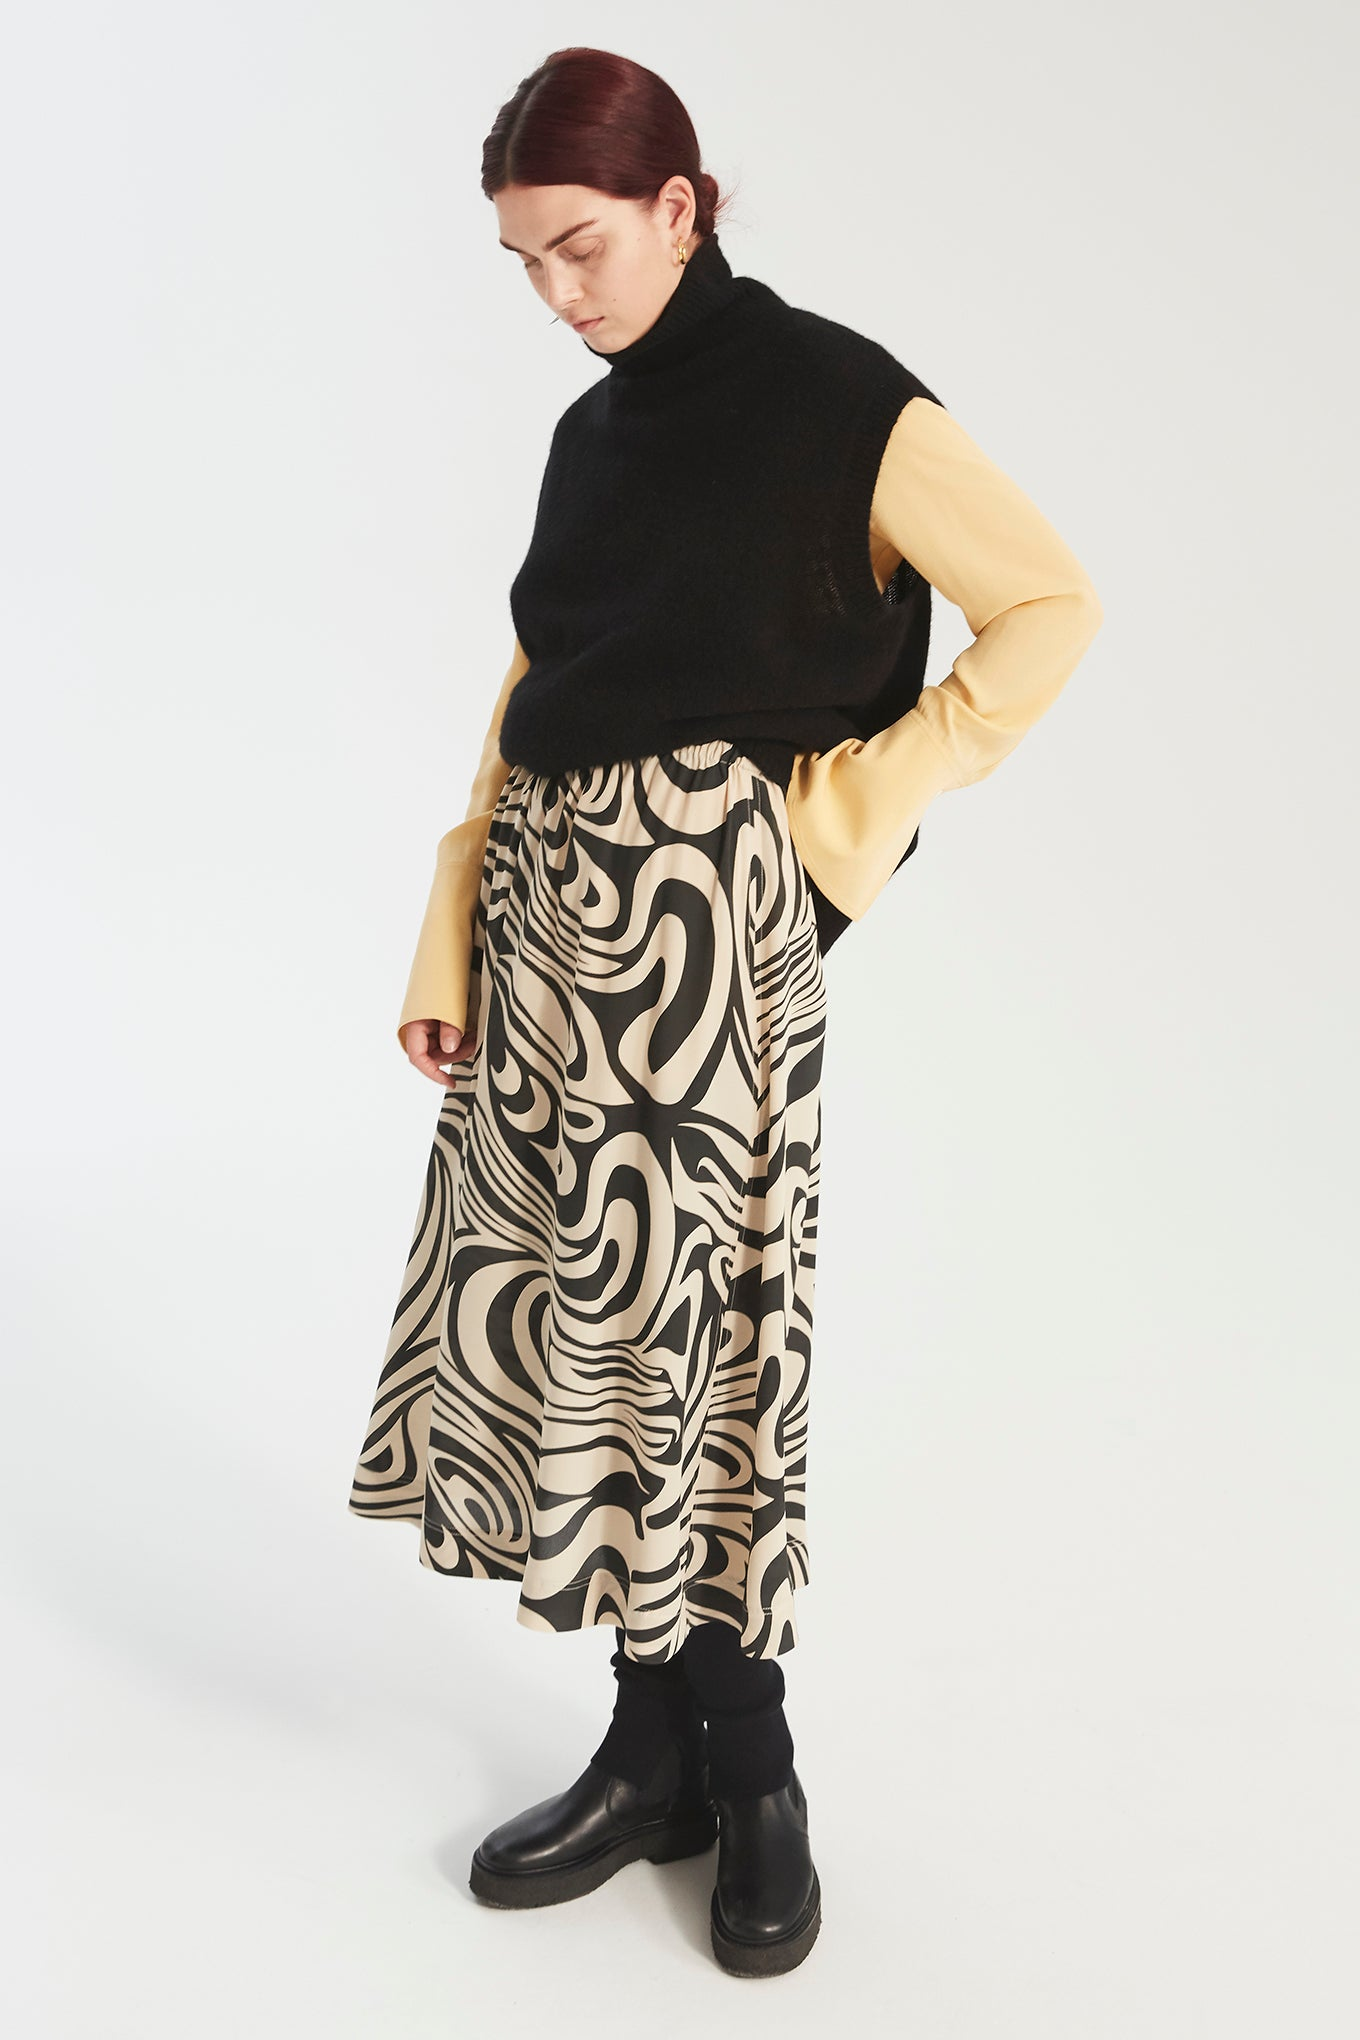 Sun Skirt - Black Swirl